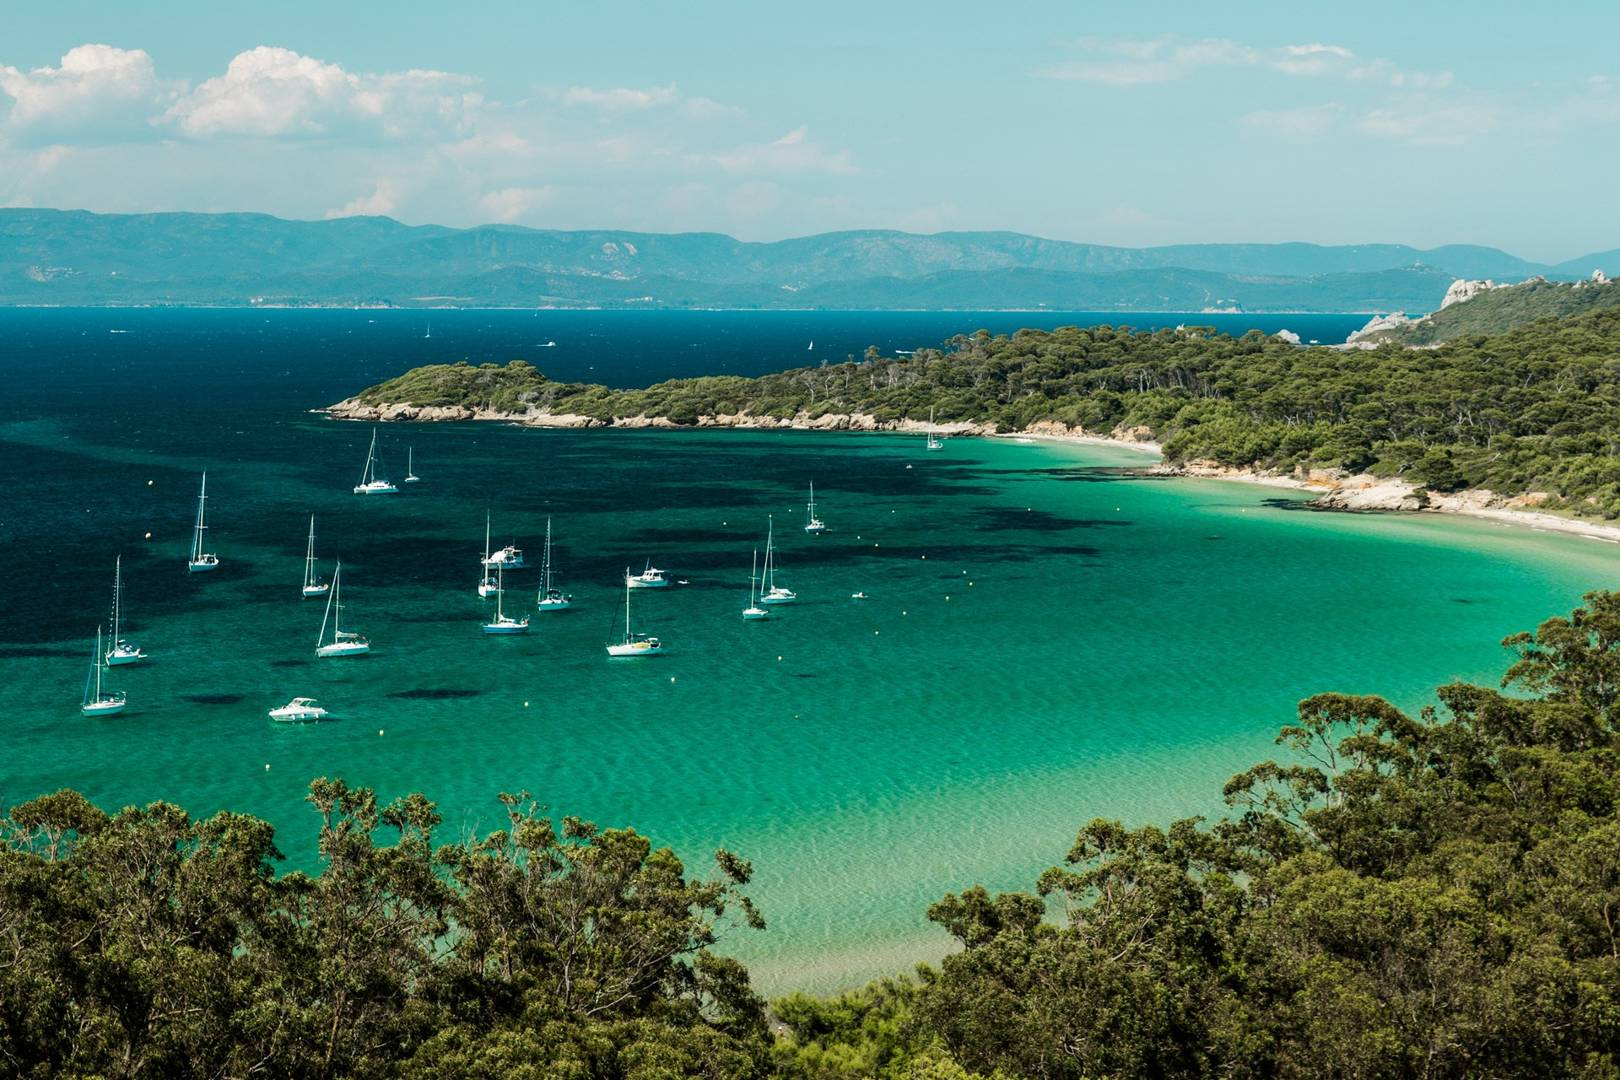 view-from-fort-sainte-agathe-of-plage-de-la-courtade-porquerolles-cote-d-azur-france-conde-nast-traveller-16june15-martin-morrell_.jpg